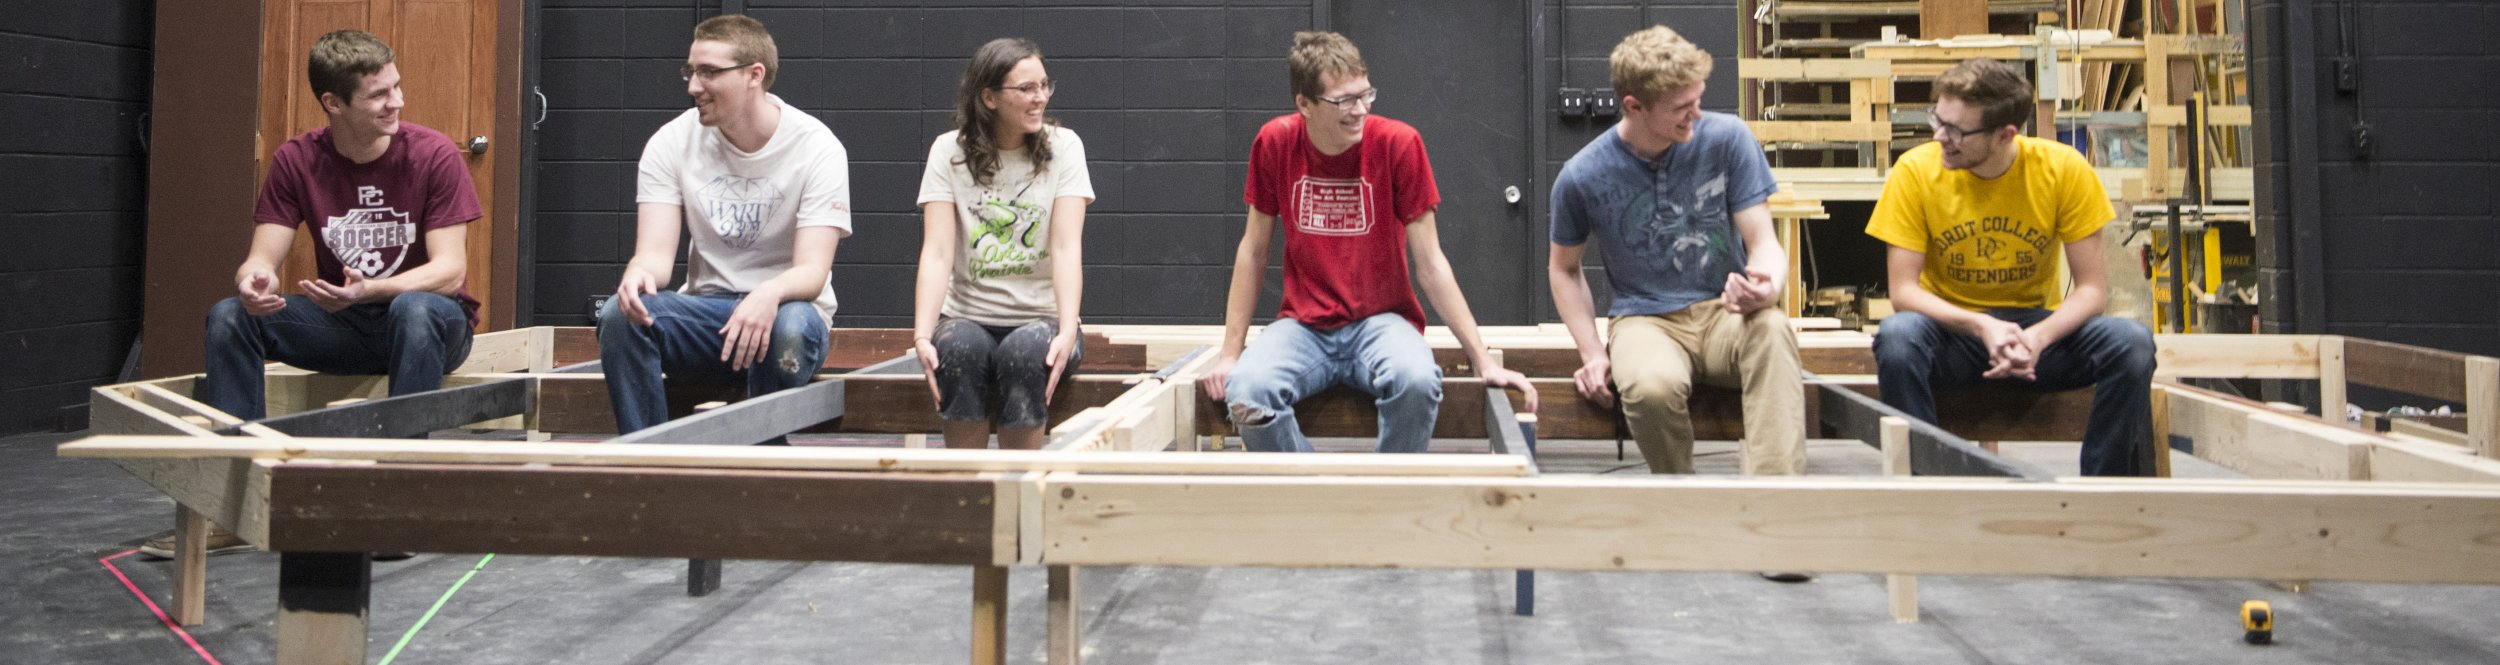 Theatre students sit on a wooden structure.